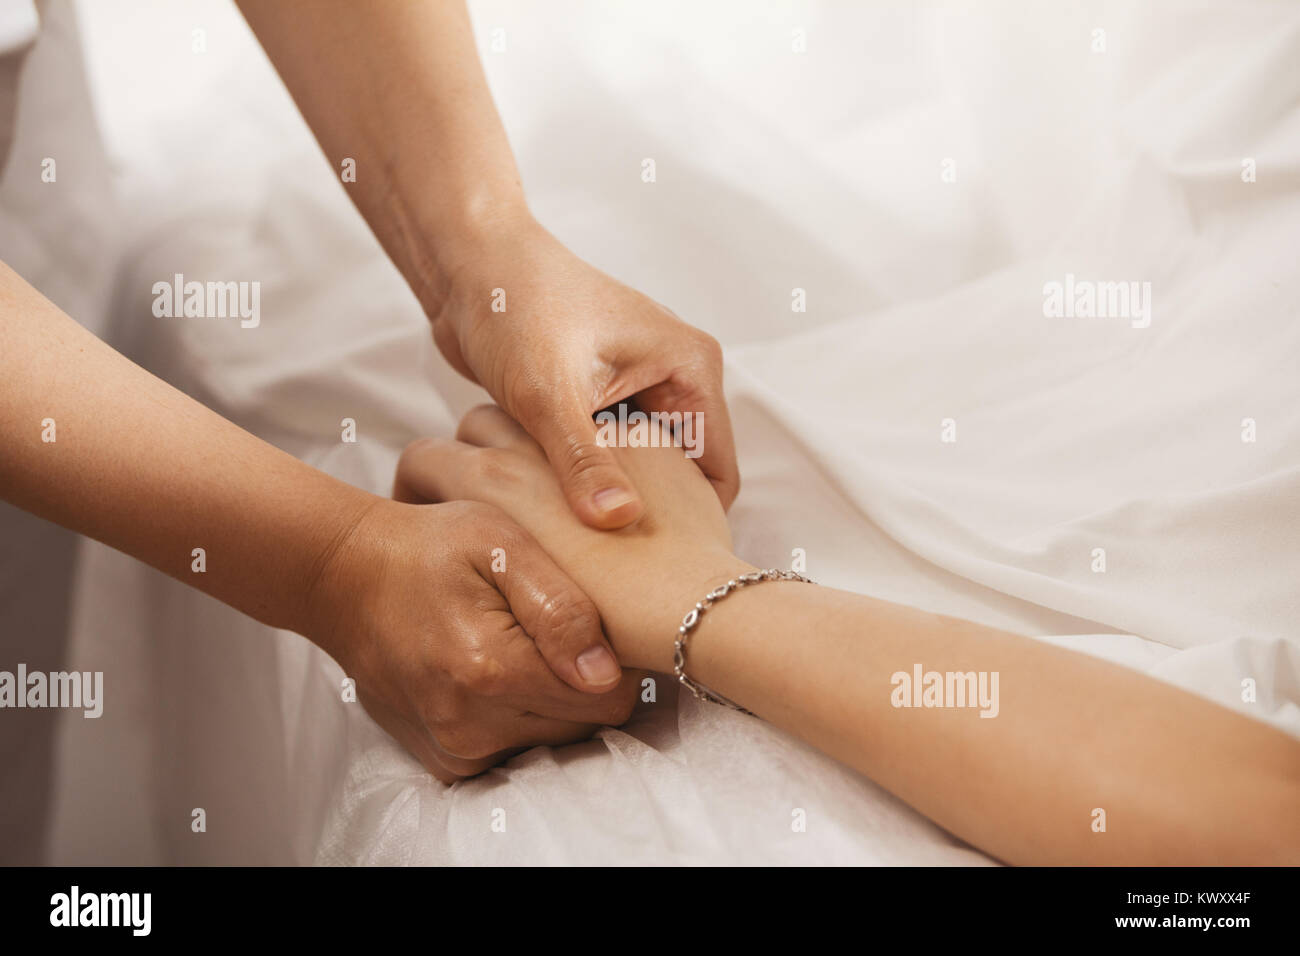 Therapist doing a pressure point massage for woman's hand - Stock Image